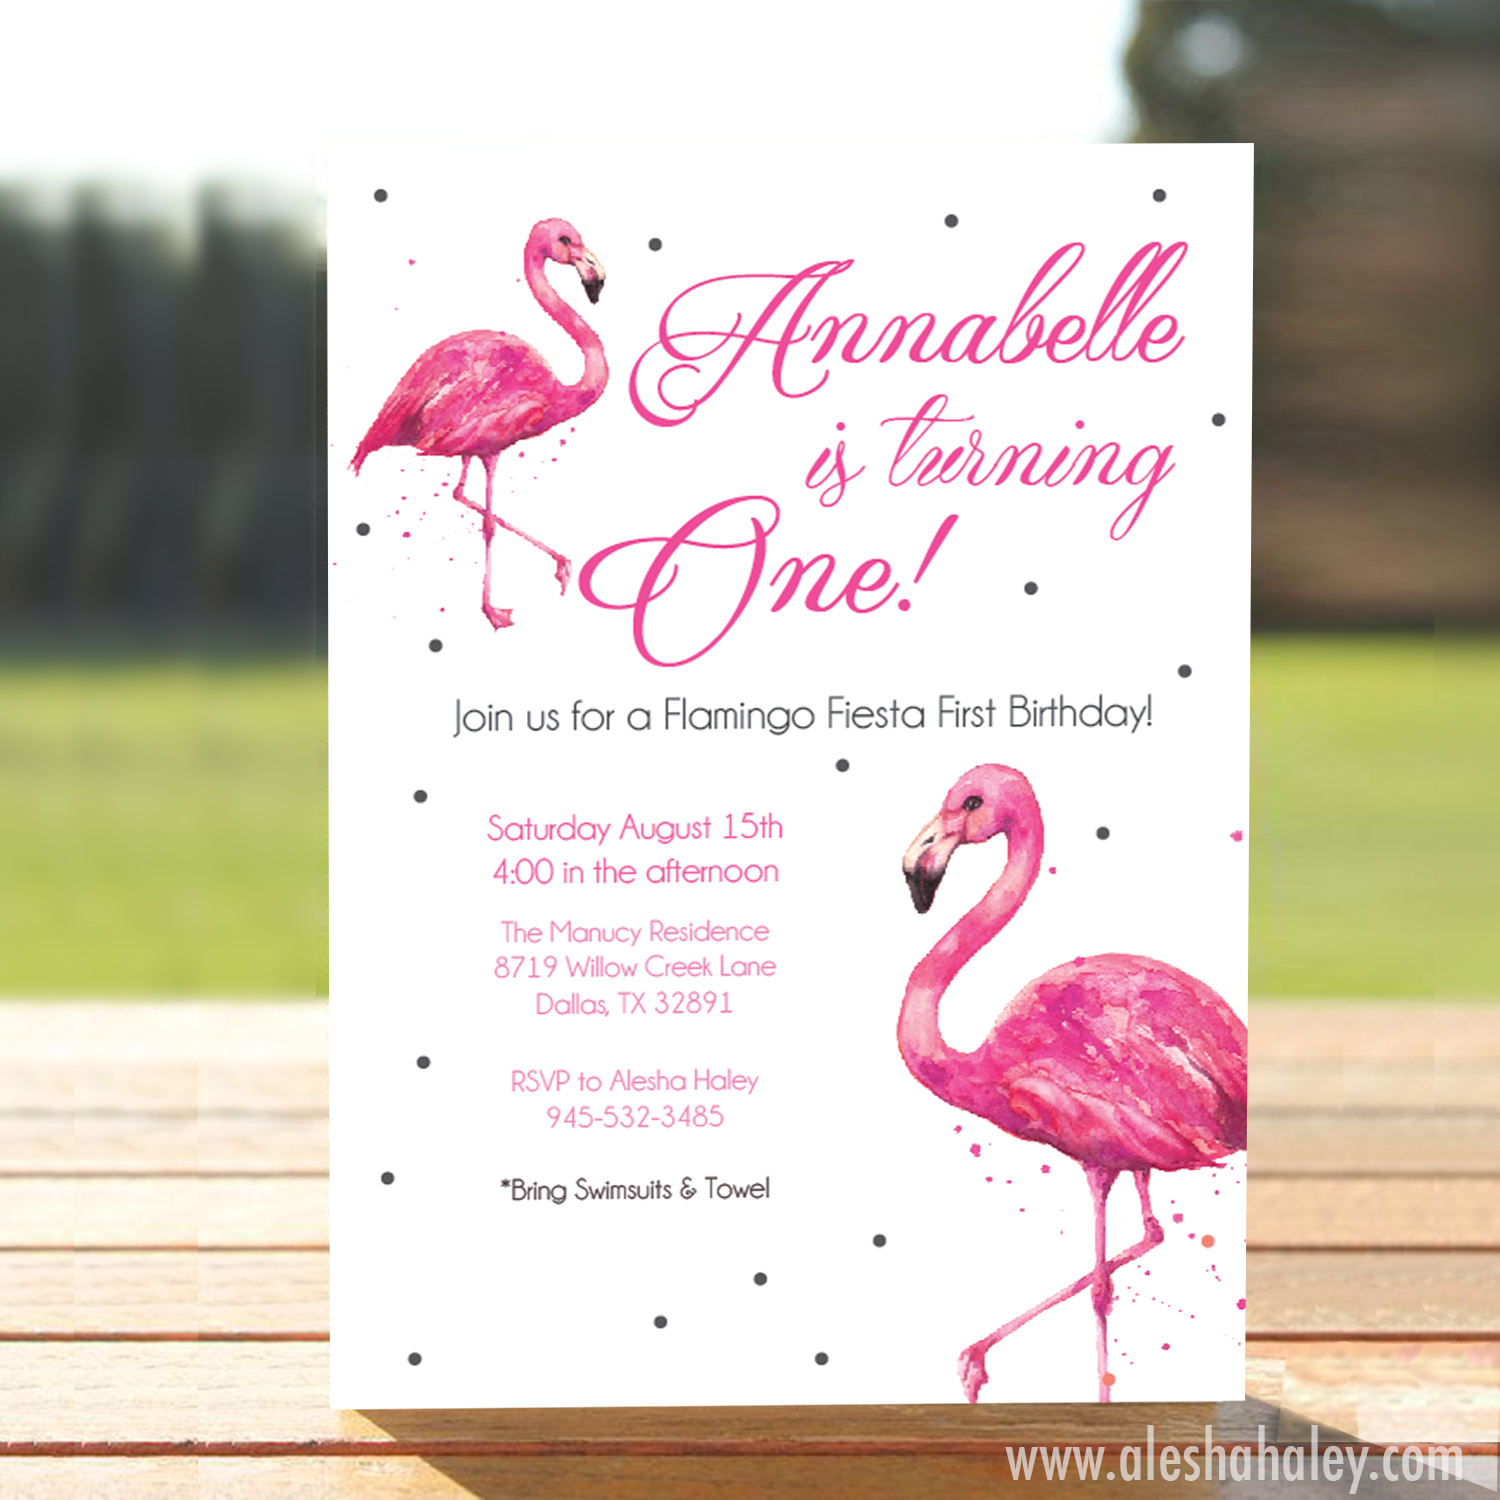 Flamingo Fiesta // First Birthday